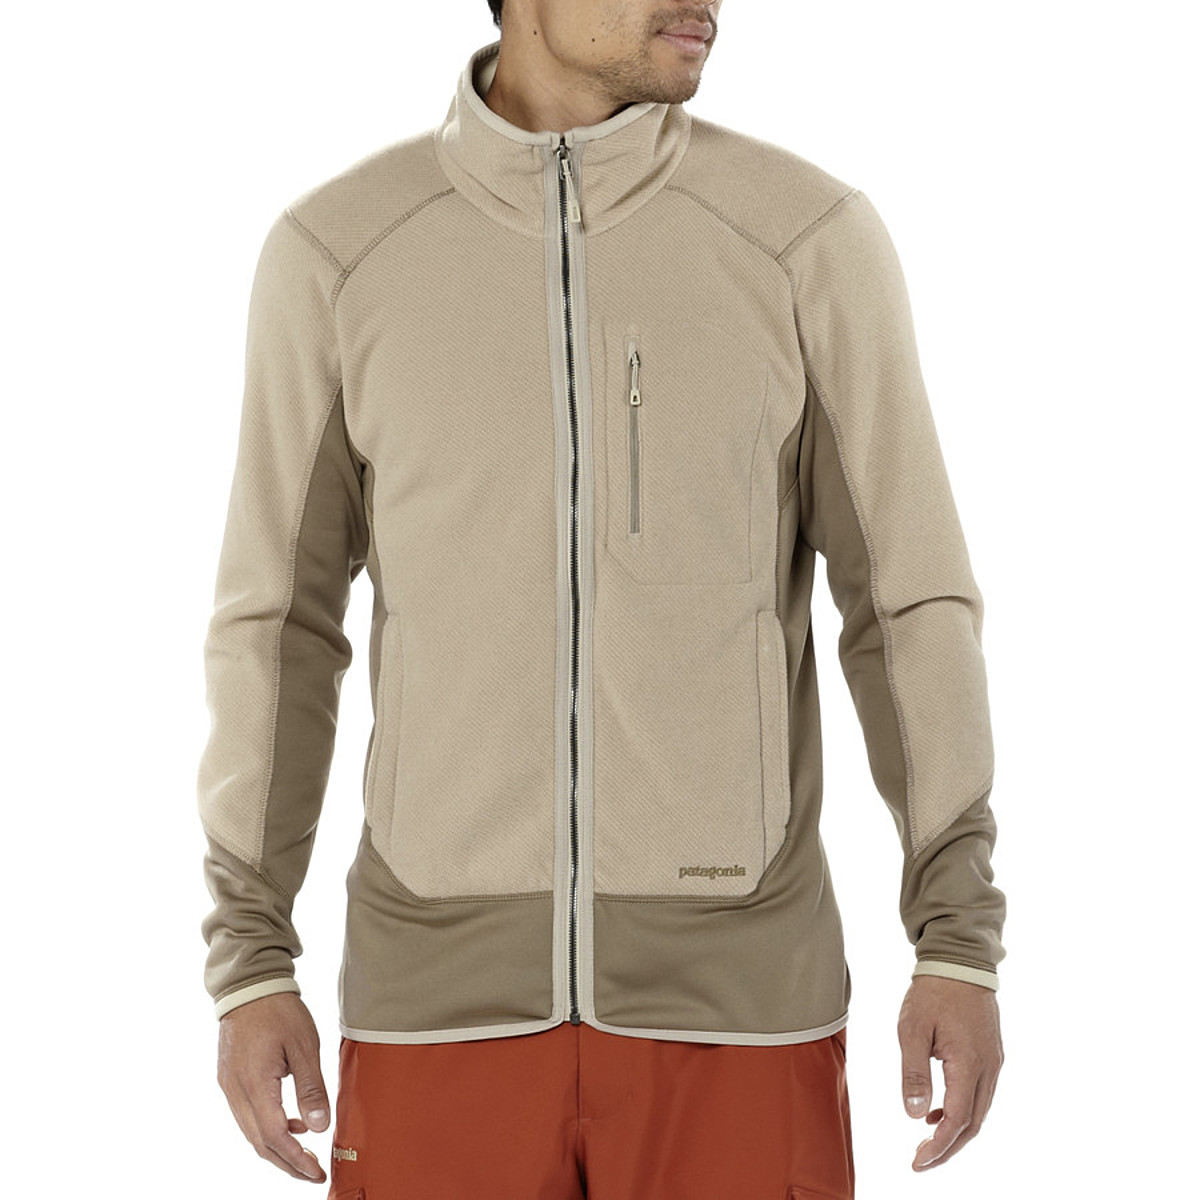 Patagonia Hybrid Fleece Jacket